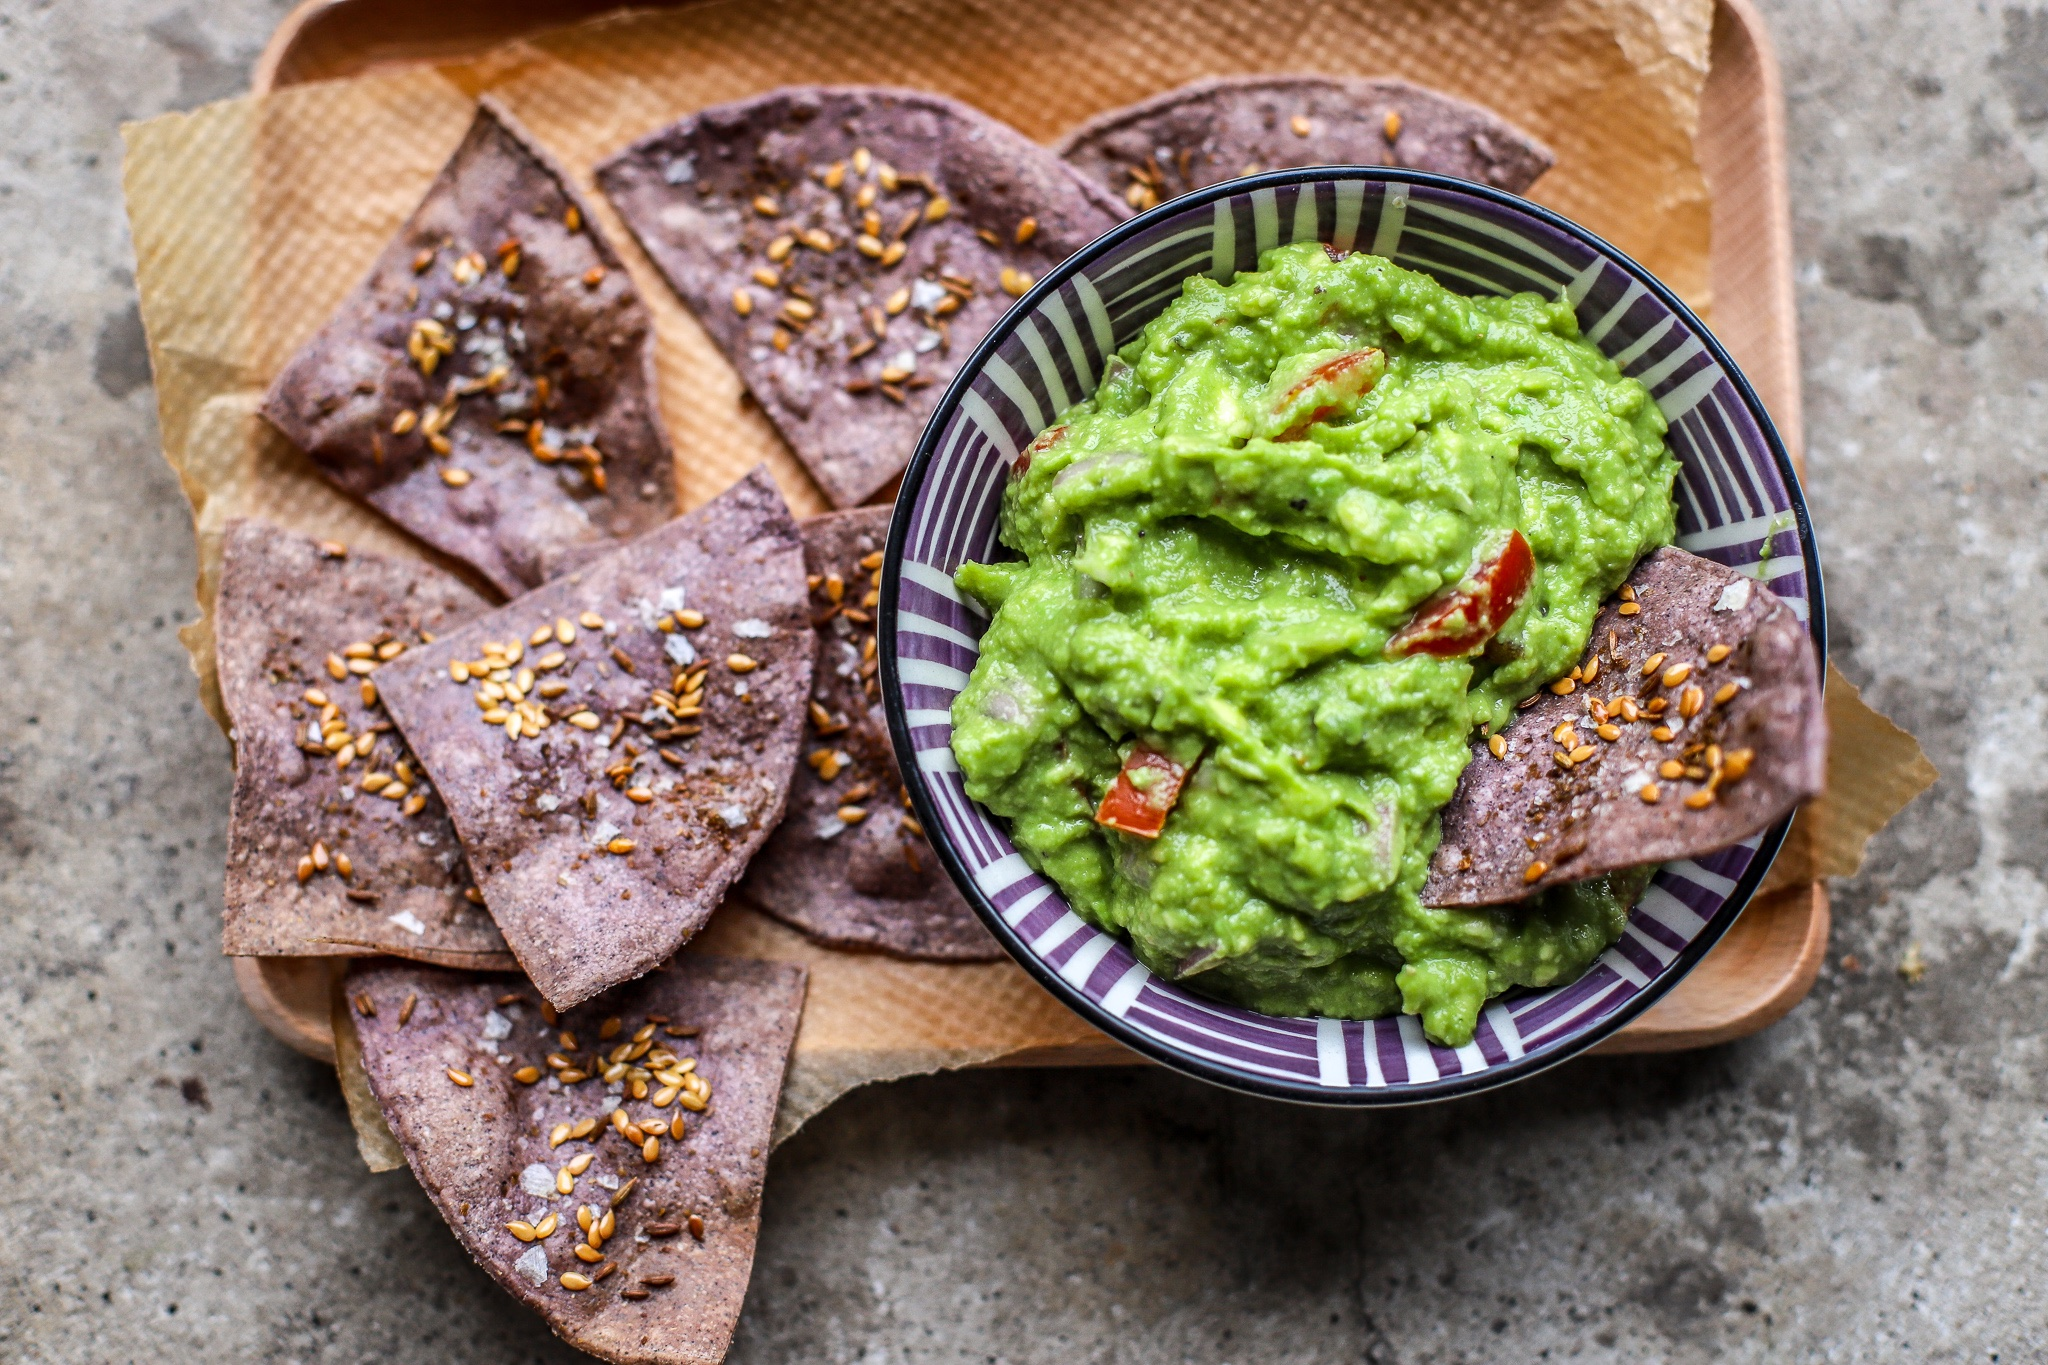 green tea guacamole with homemade purple tortilla chips on wooden tray